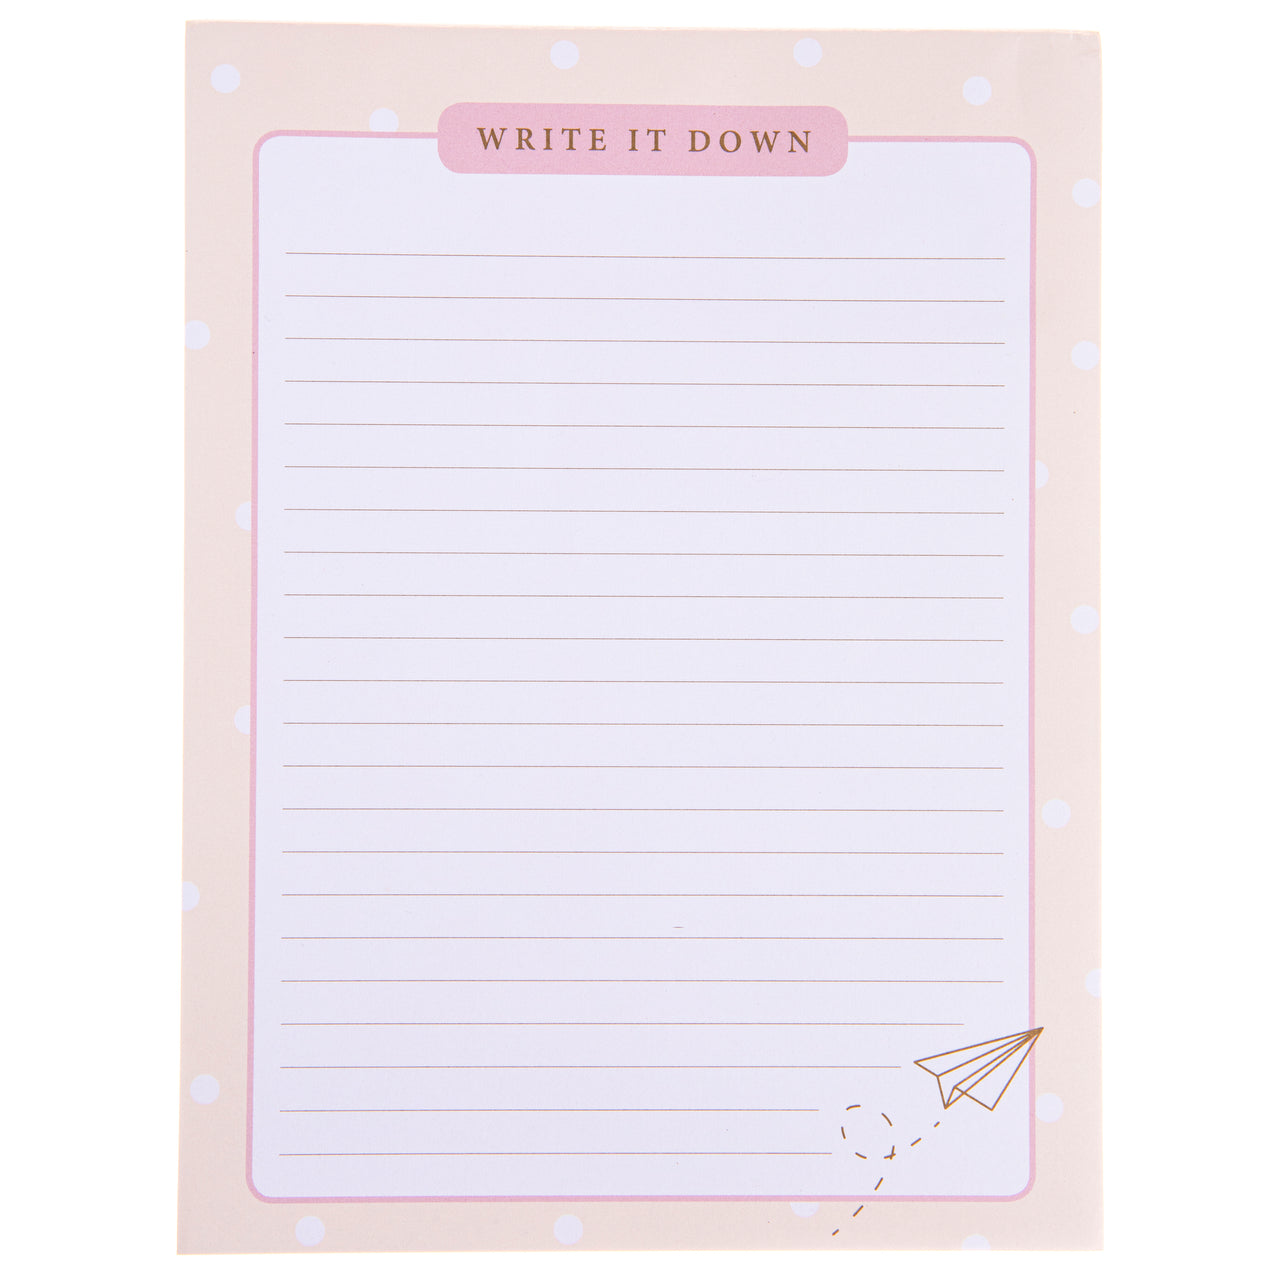 Write It Down Large Notepad